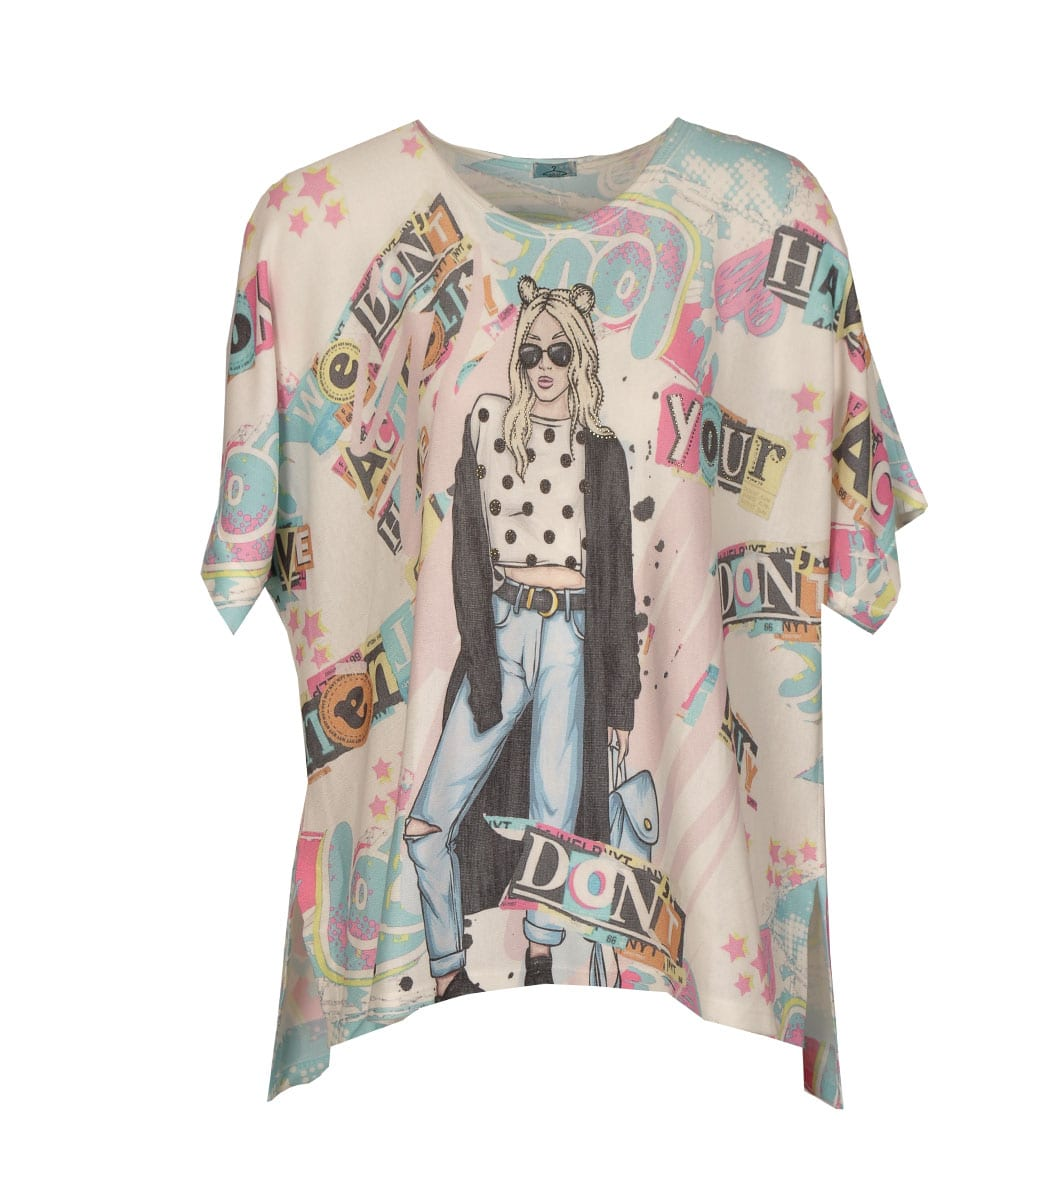 Lady word print oversized top